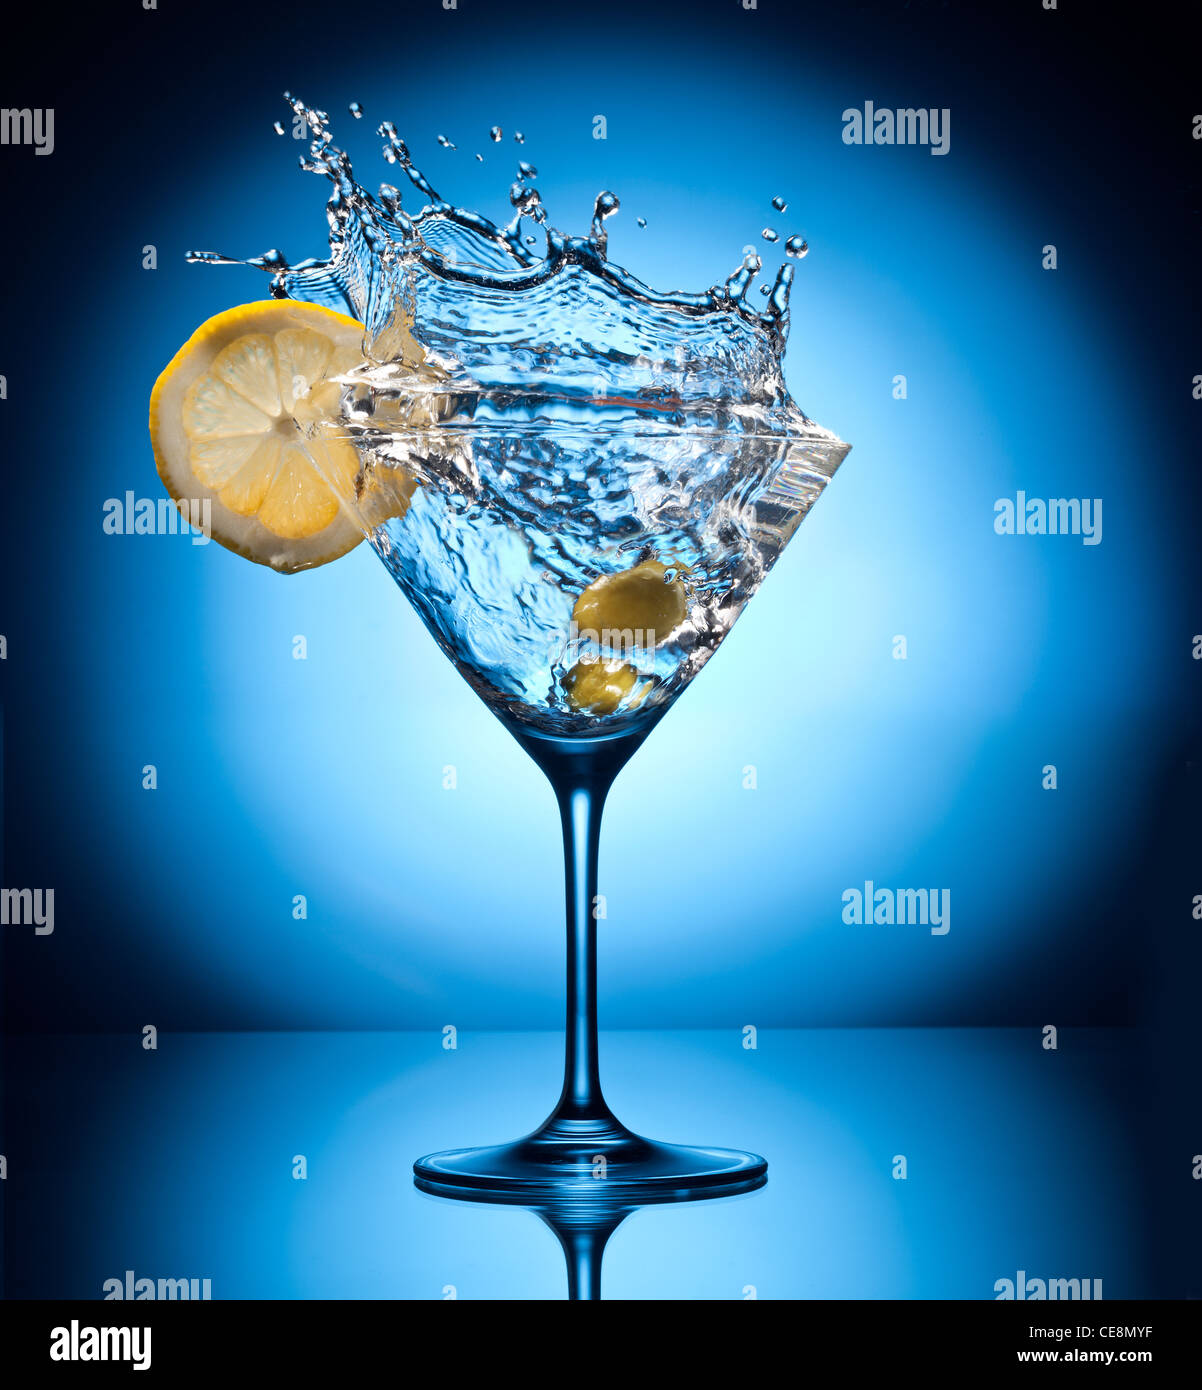 Splash martini from flying olives. Object on a blue background. - Stock Image